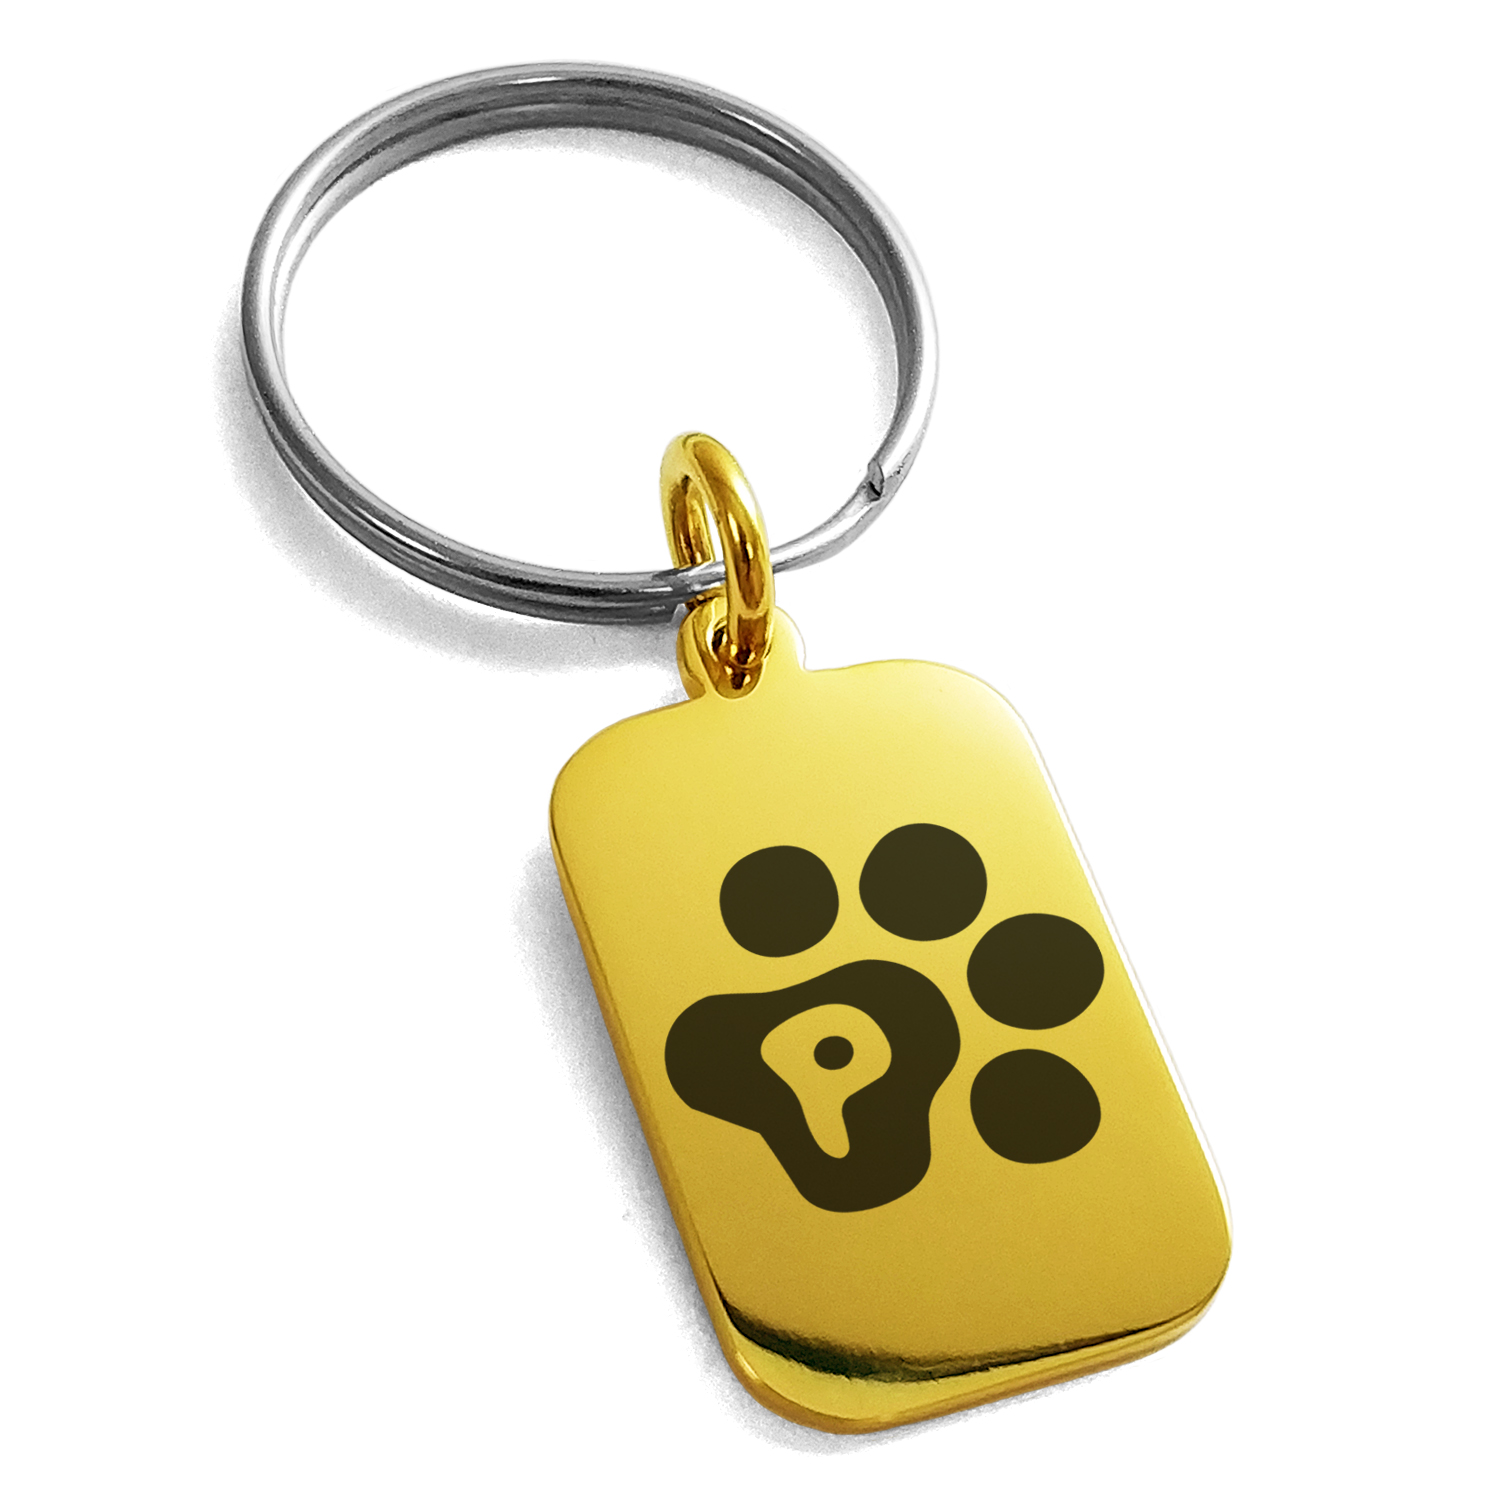 Stainless Steel Letter P Initial Cat Dog Paws Monogram Engraved Small Rectangle Dog Tag Charm Keychain Keyring